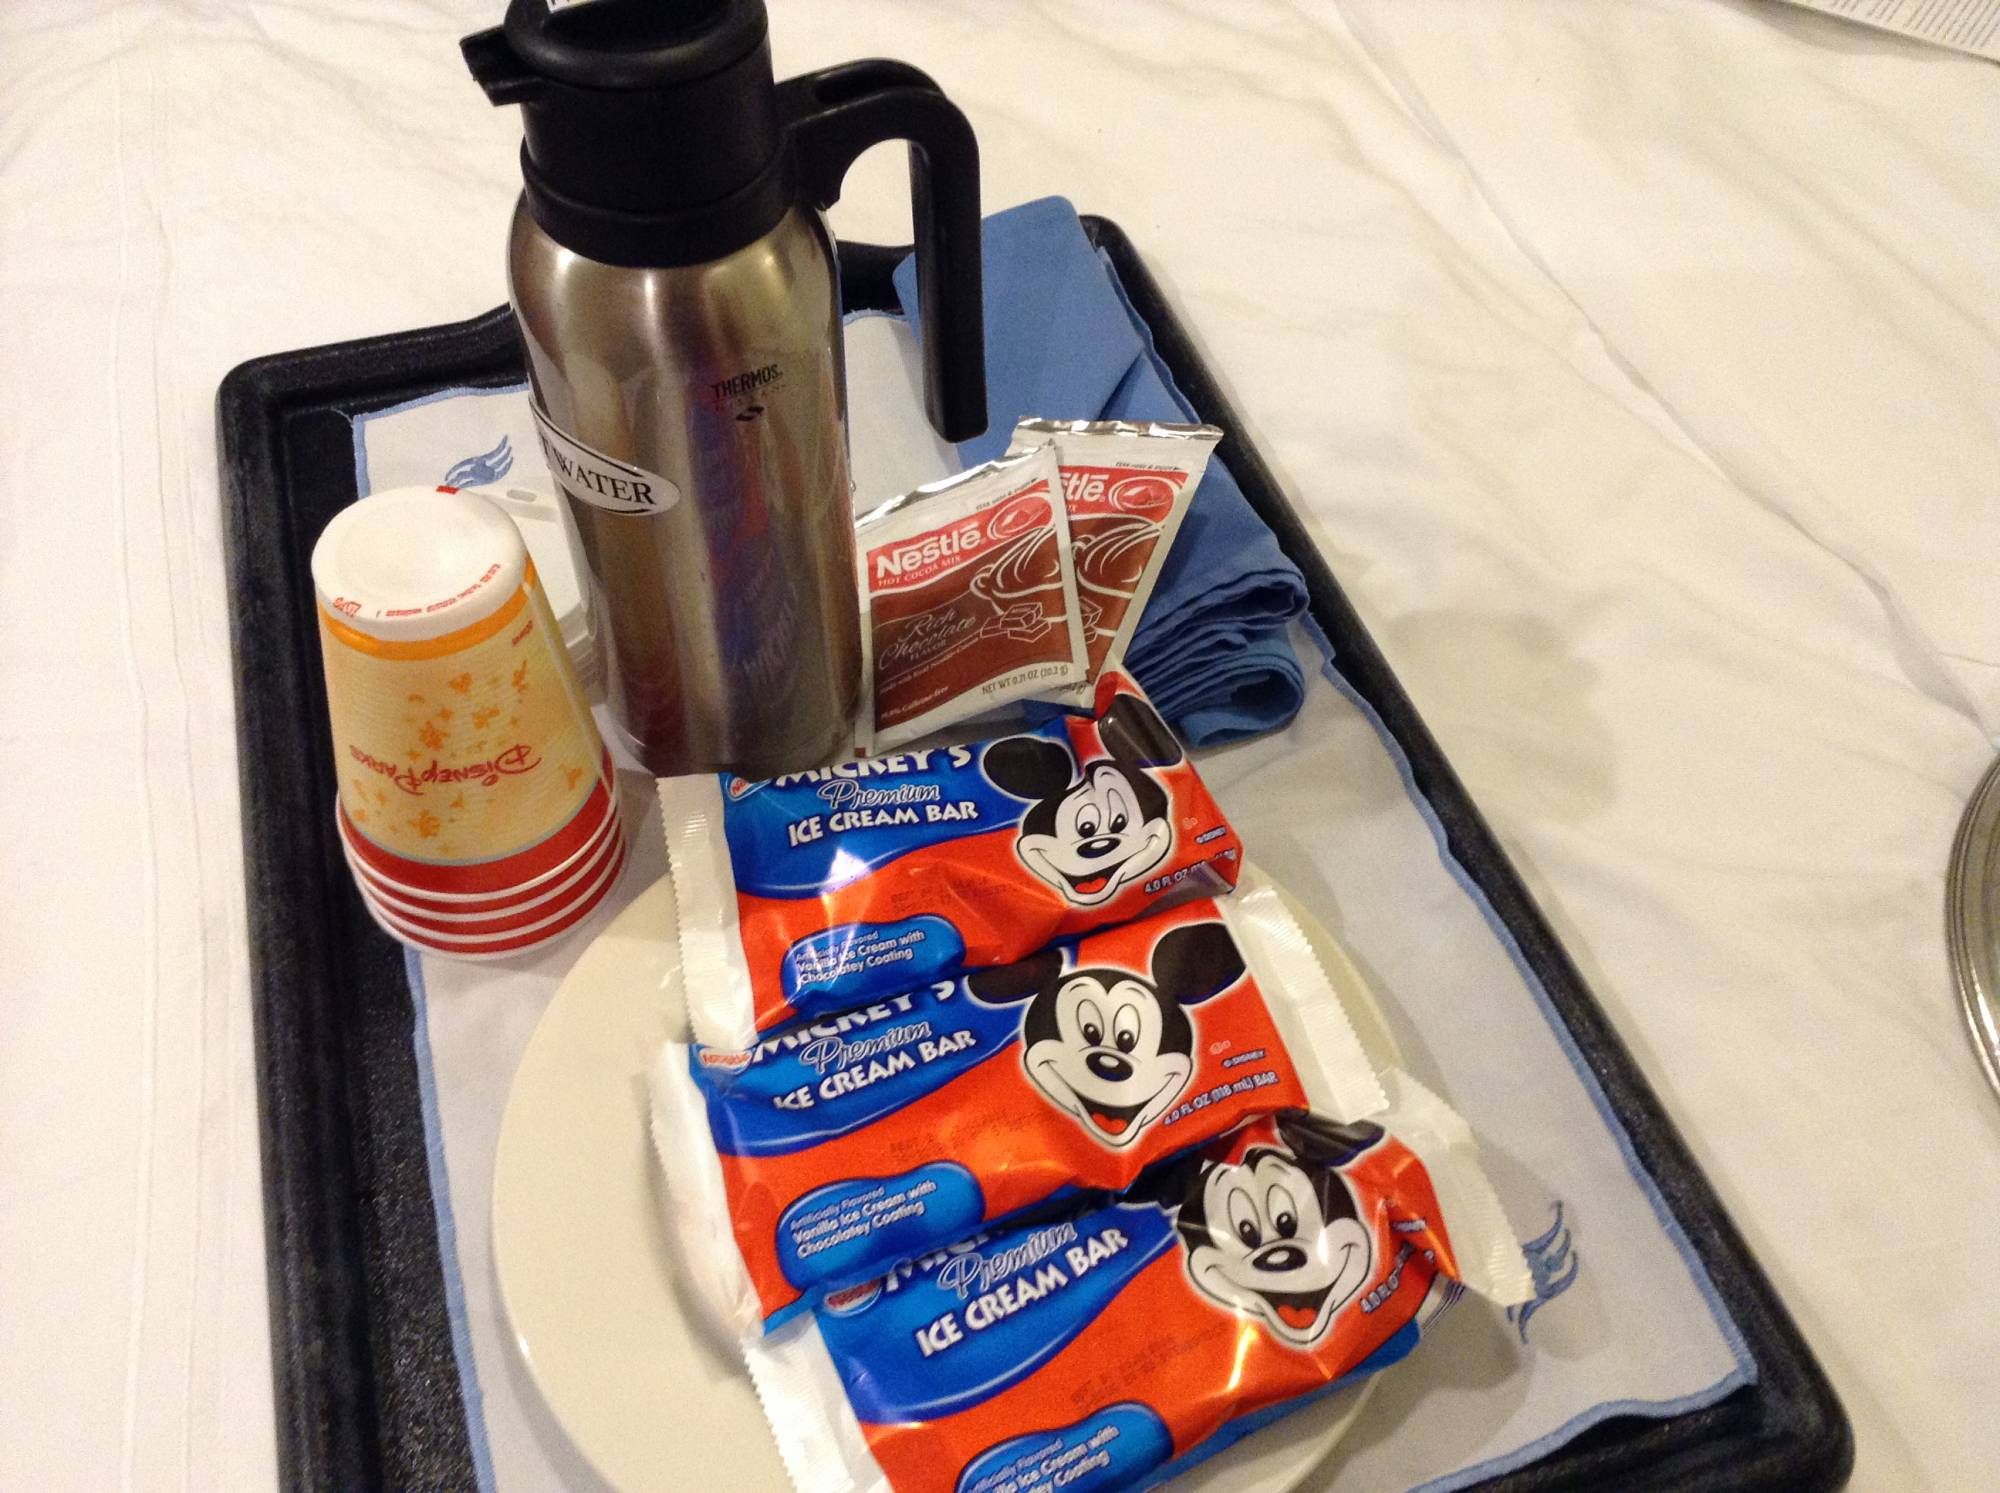 Learn how to find healthy food onboard the Disney Cruise Line |PassPorter.com